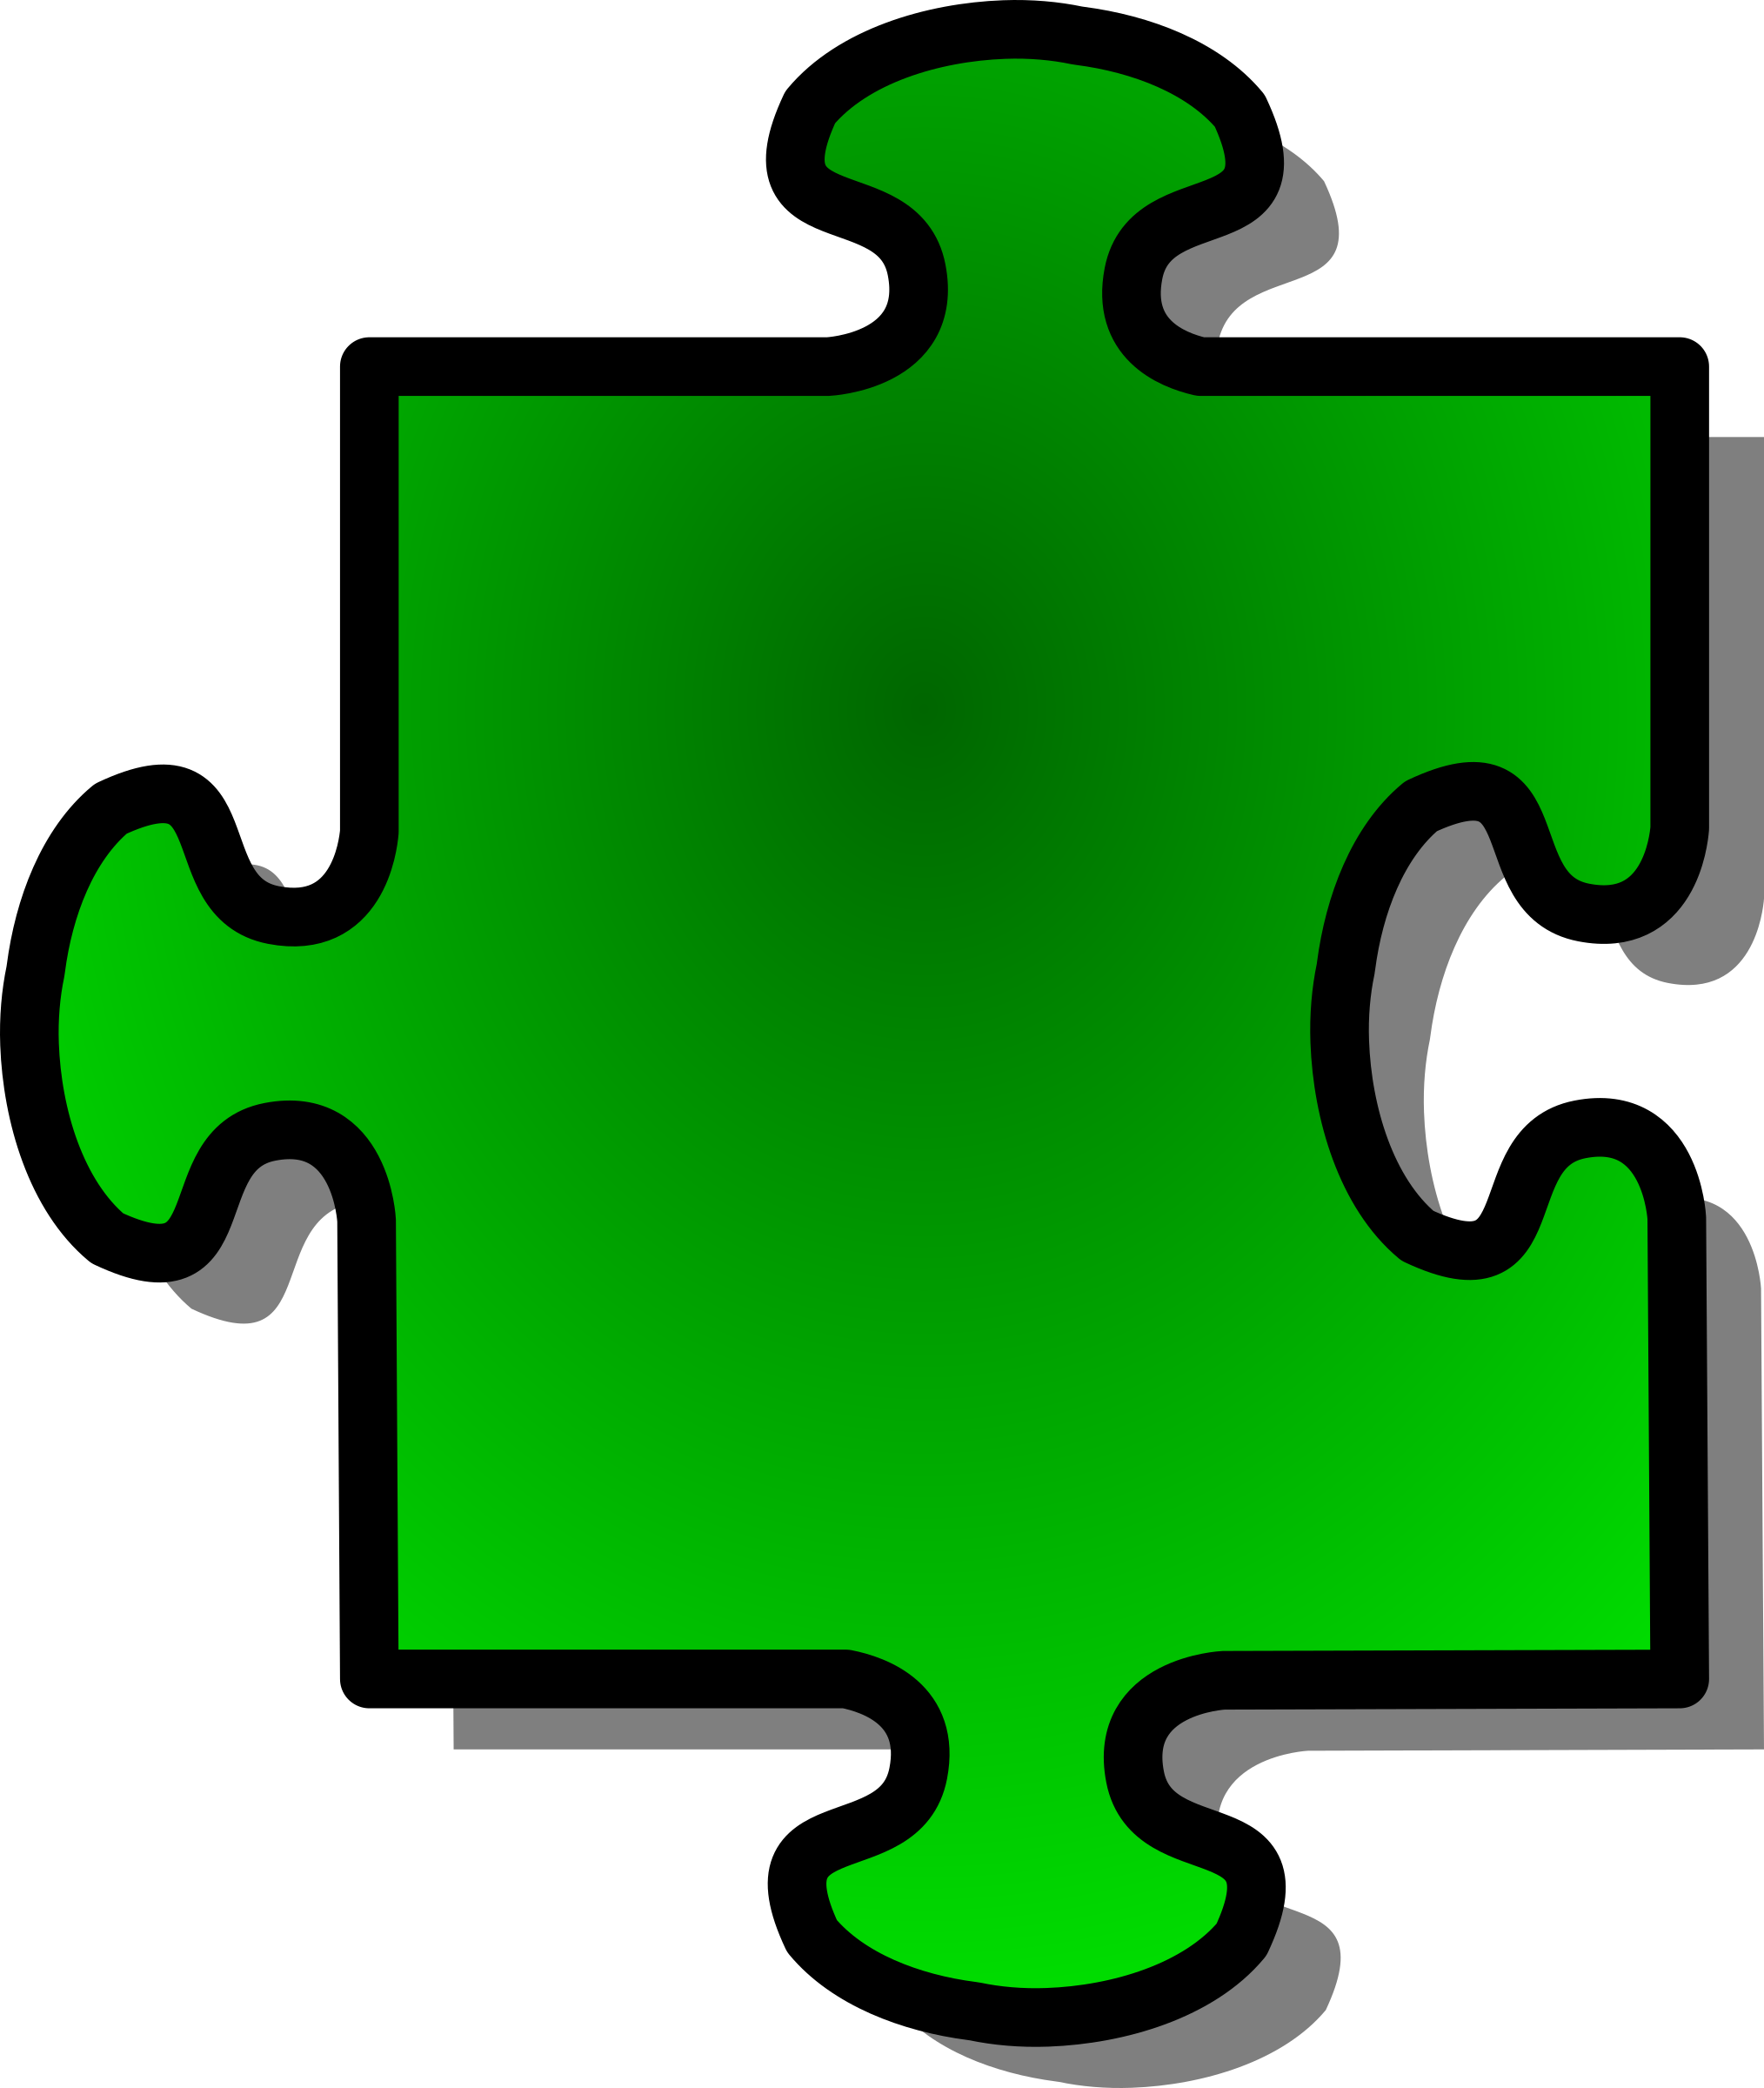 Green Jigsaw piece 07 by nicubunu